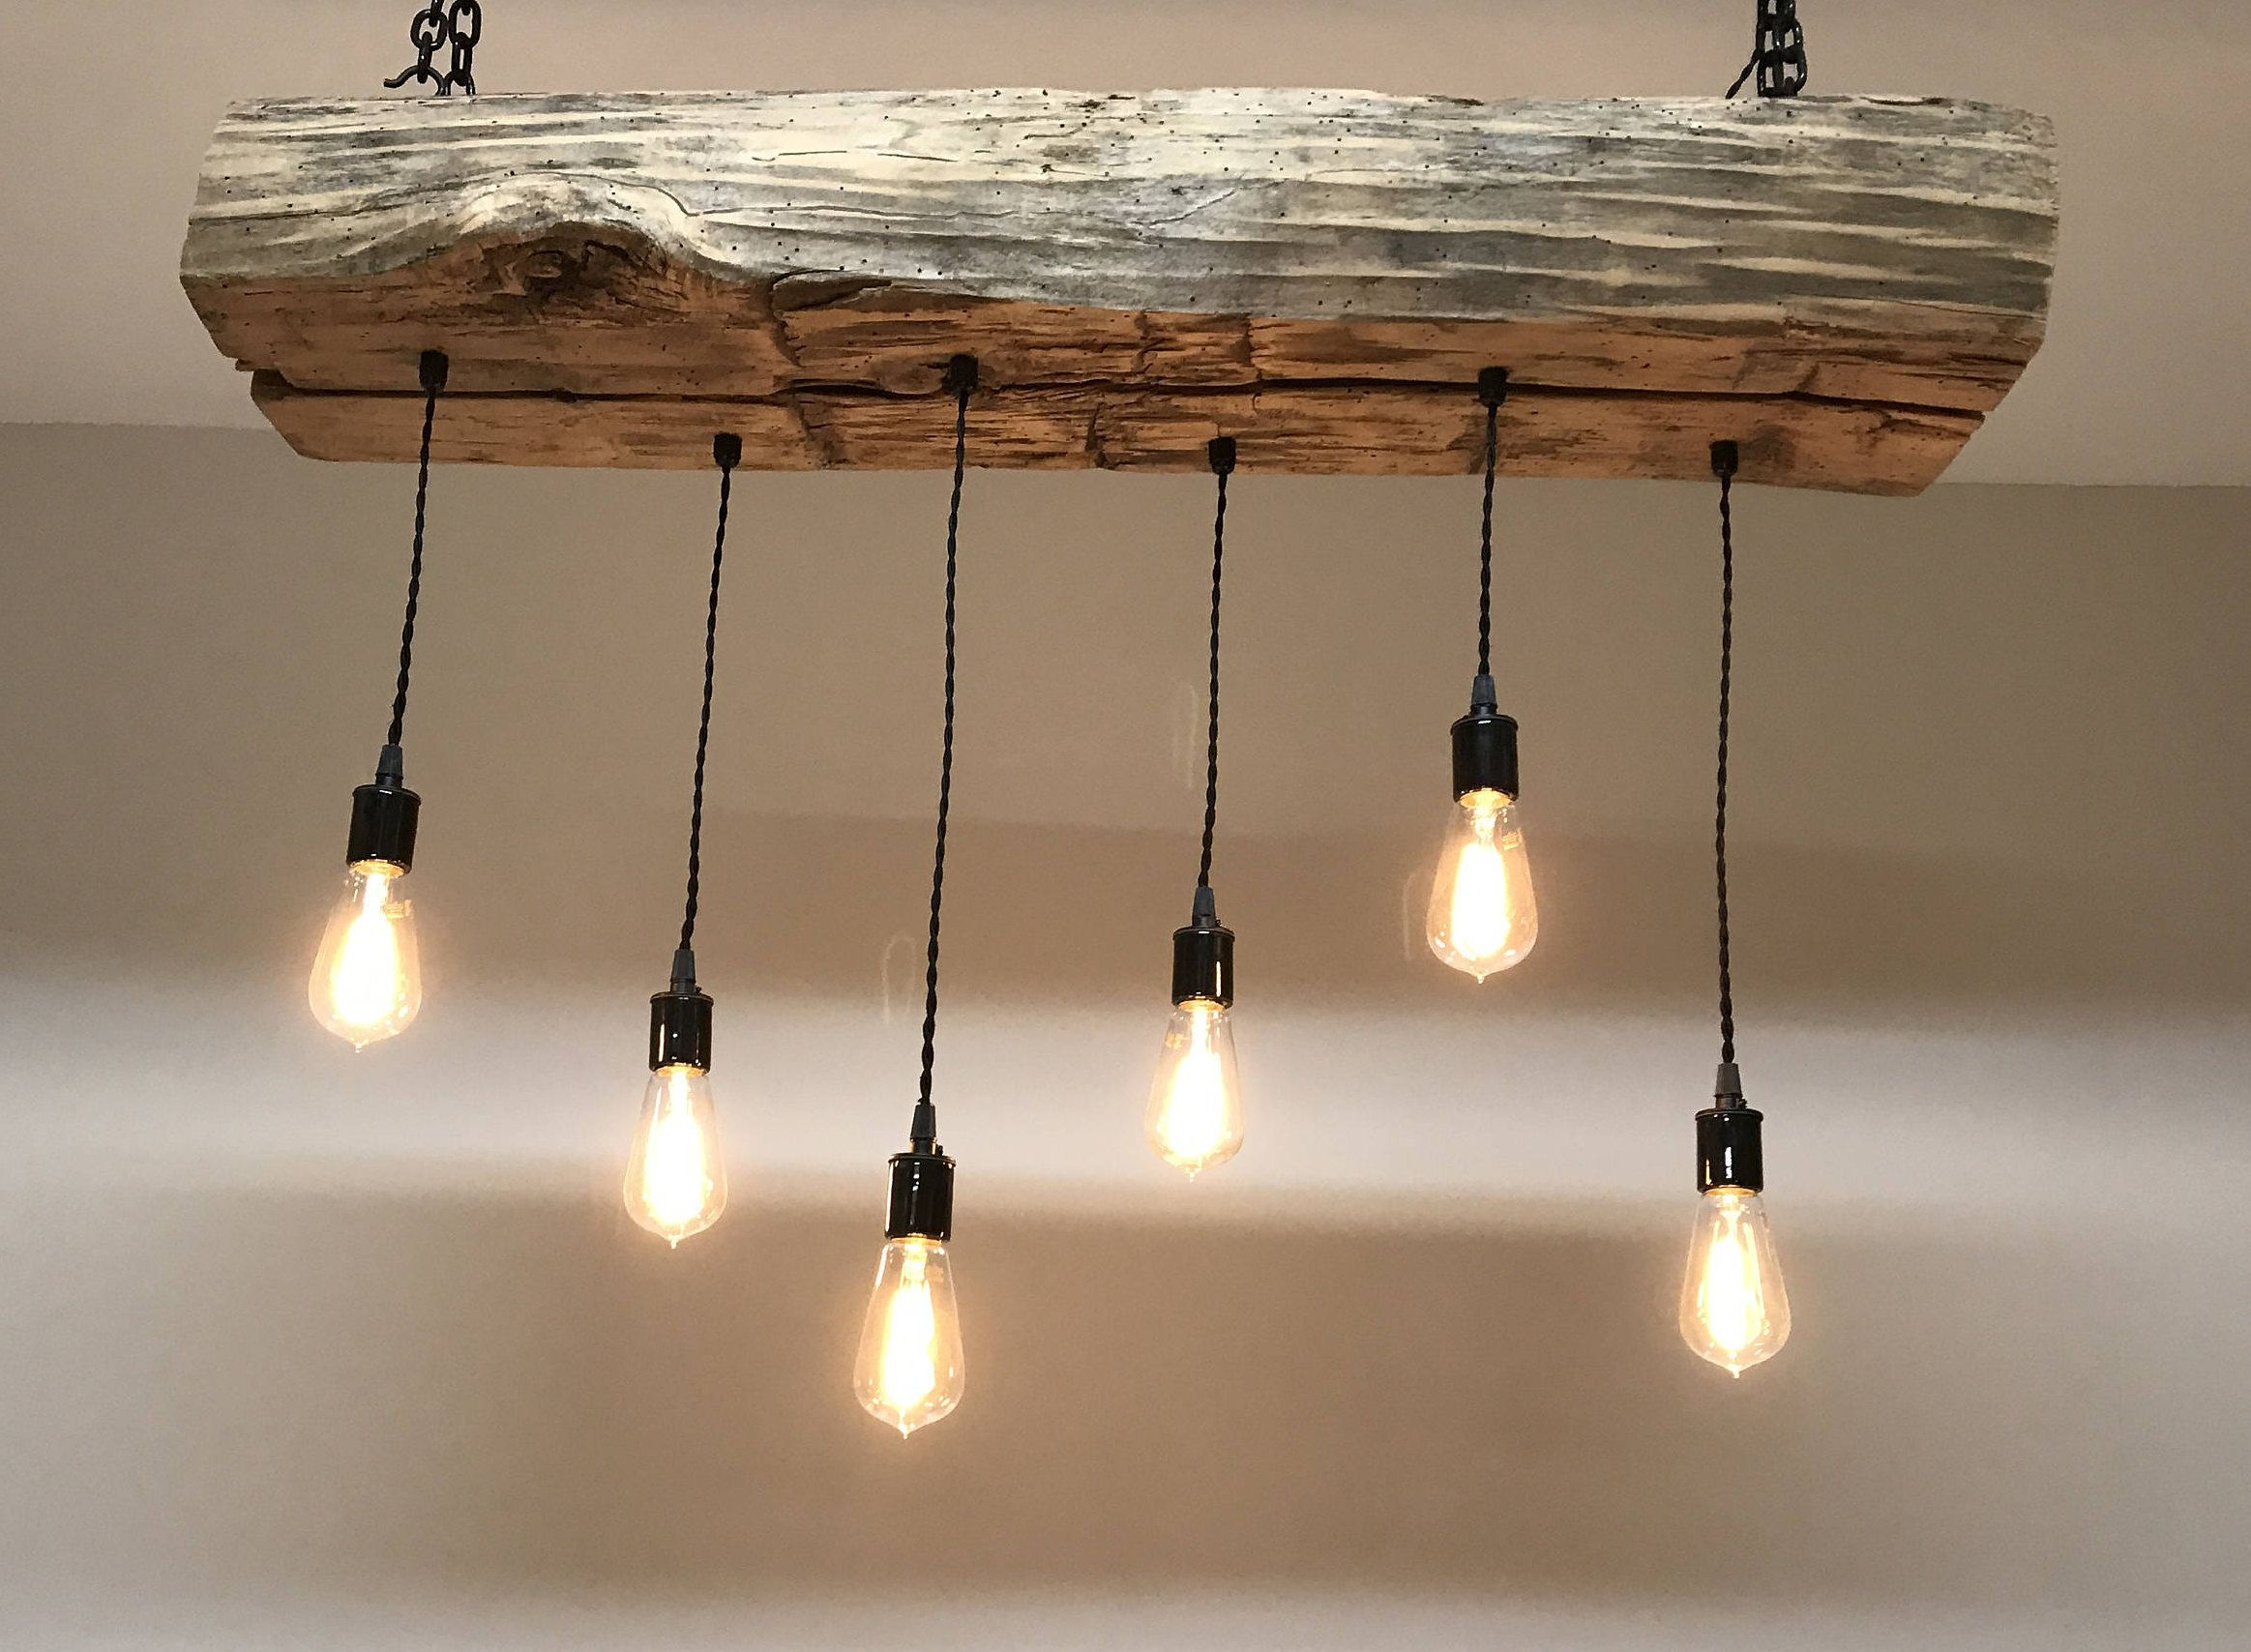 of all ended lights lantern about image lighting double lightshalogen home modern size beautiful design ceiling light pendant stars full edison antique moravian mini semi highlight lightsbrass industrial